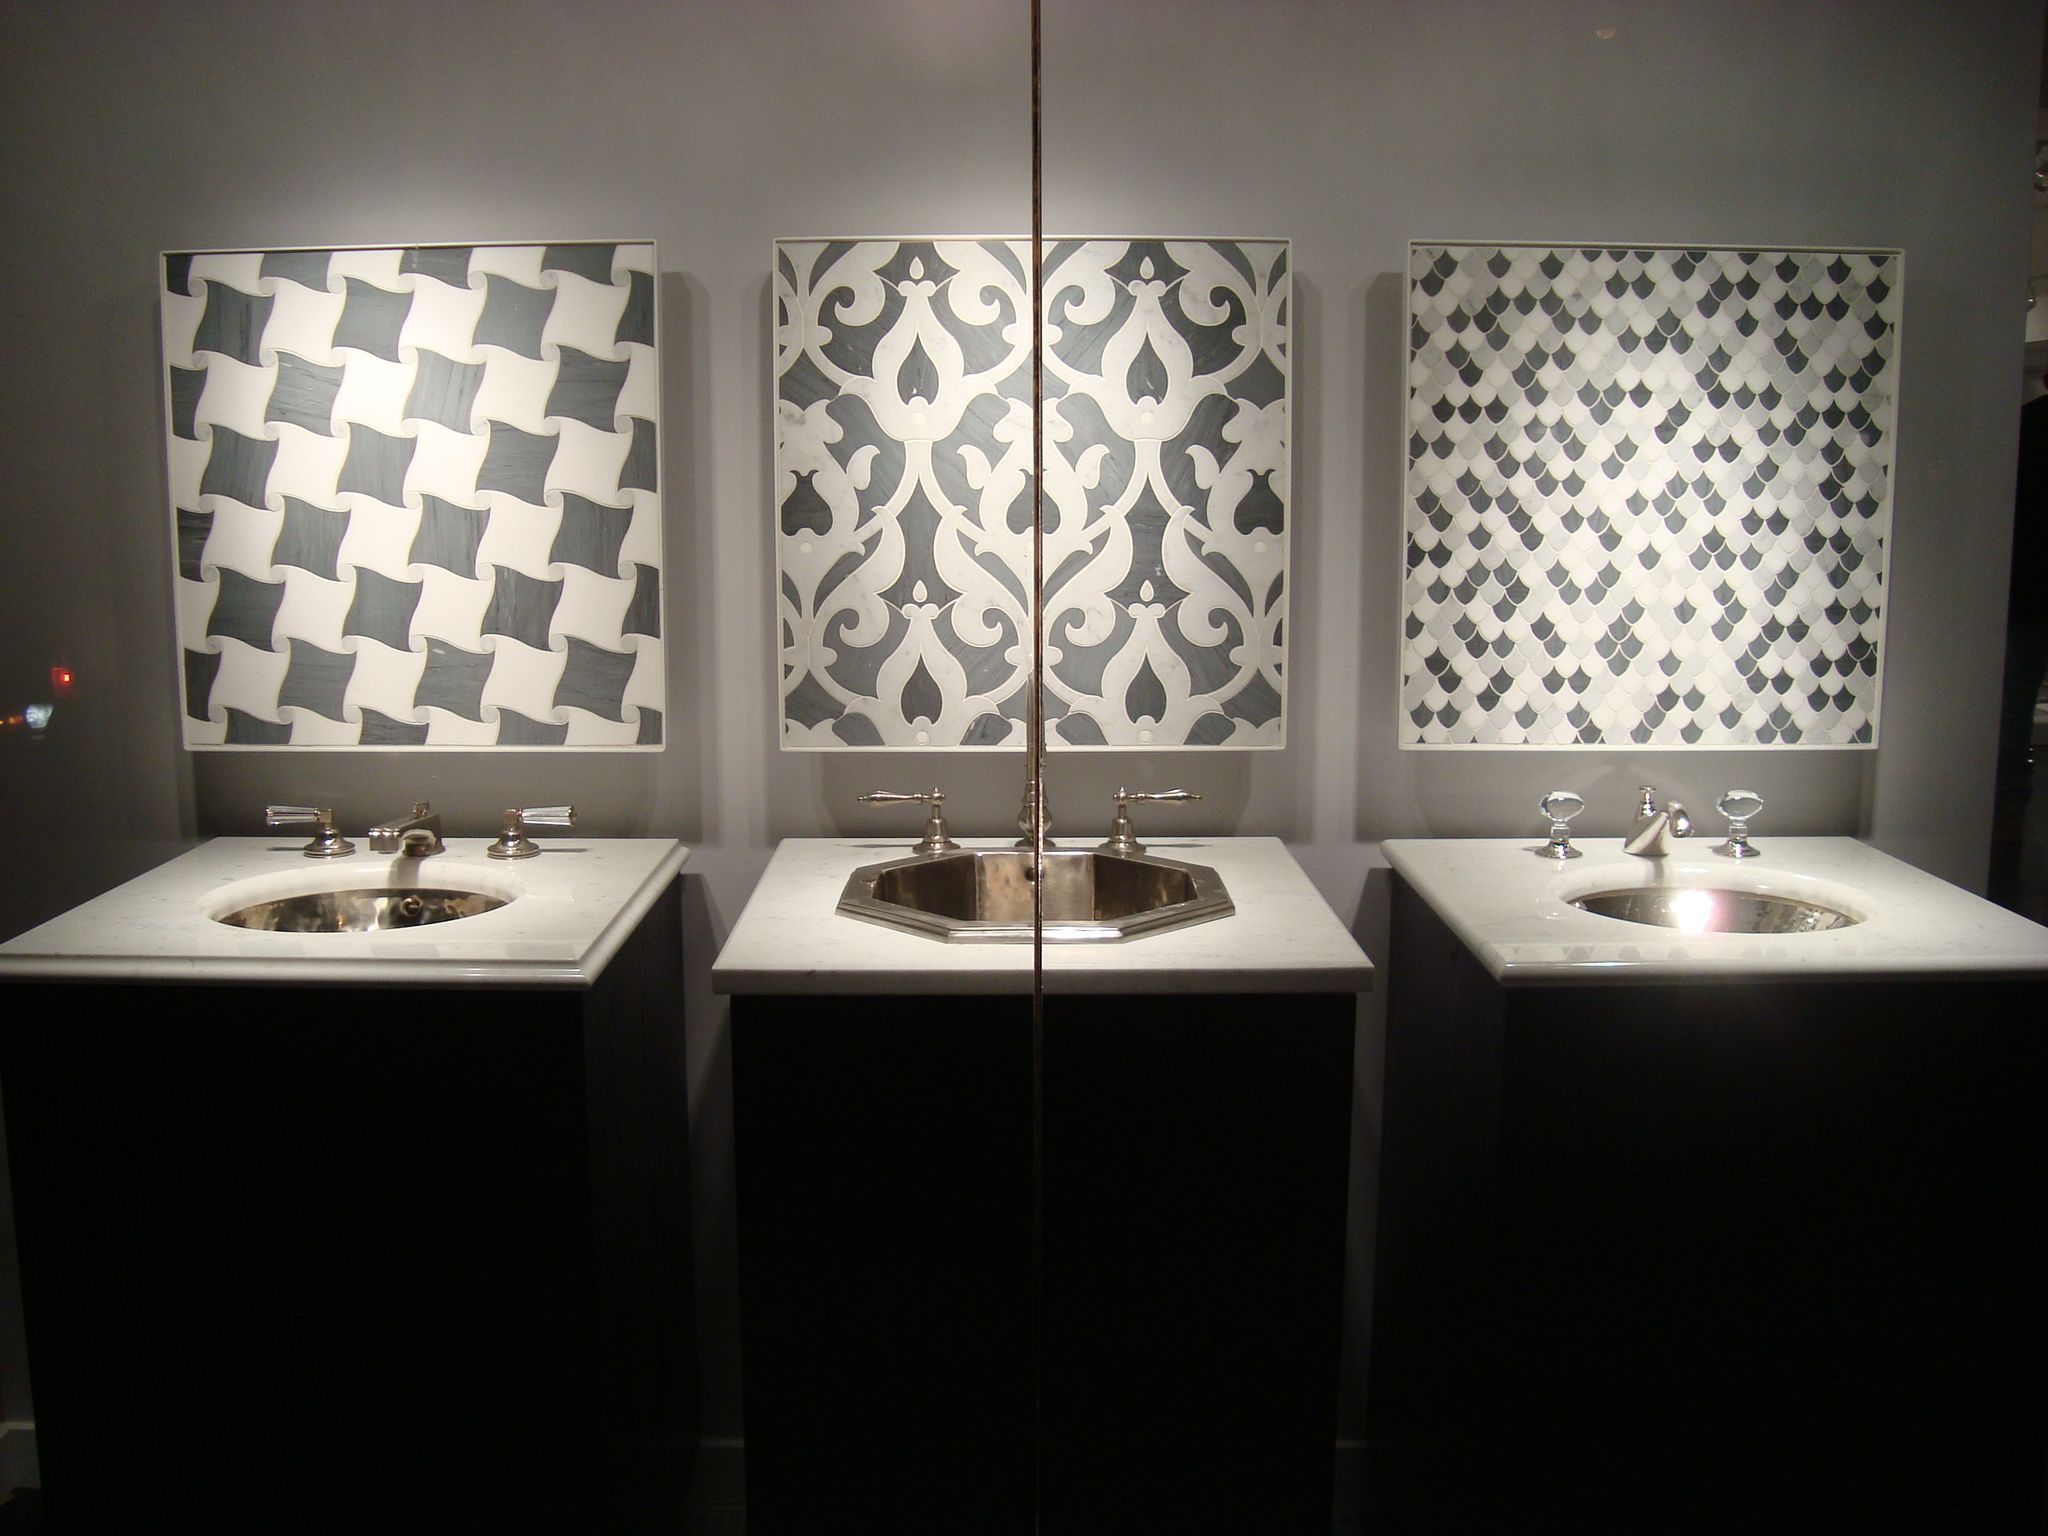 faucet and mosaic display in the 58th st showroom new york 58th faucet and mosaic display in the 58th st showroom